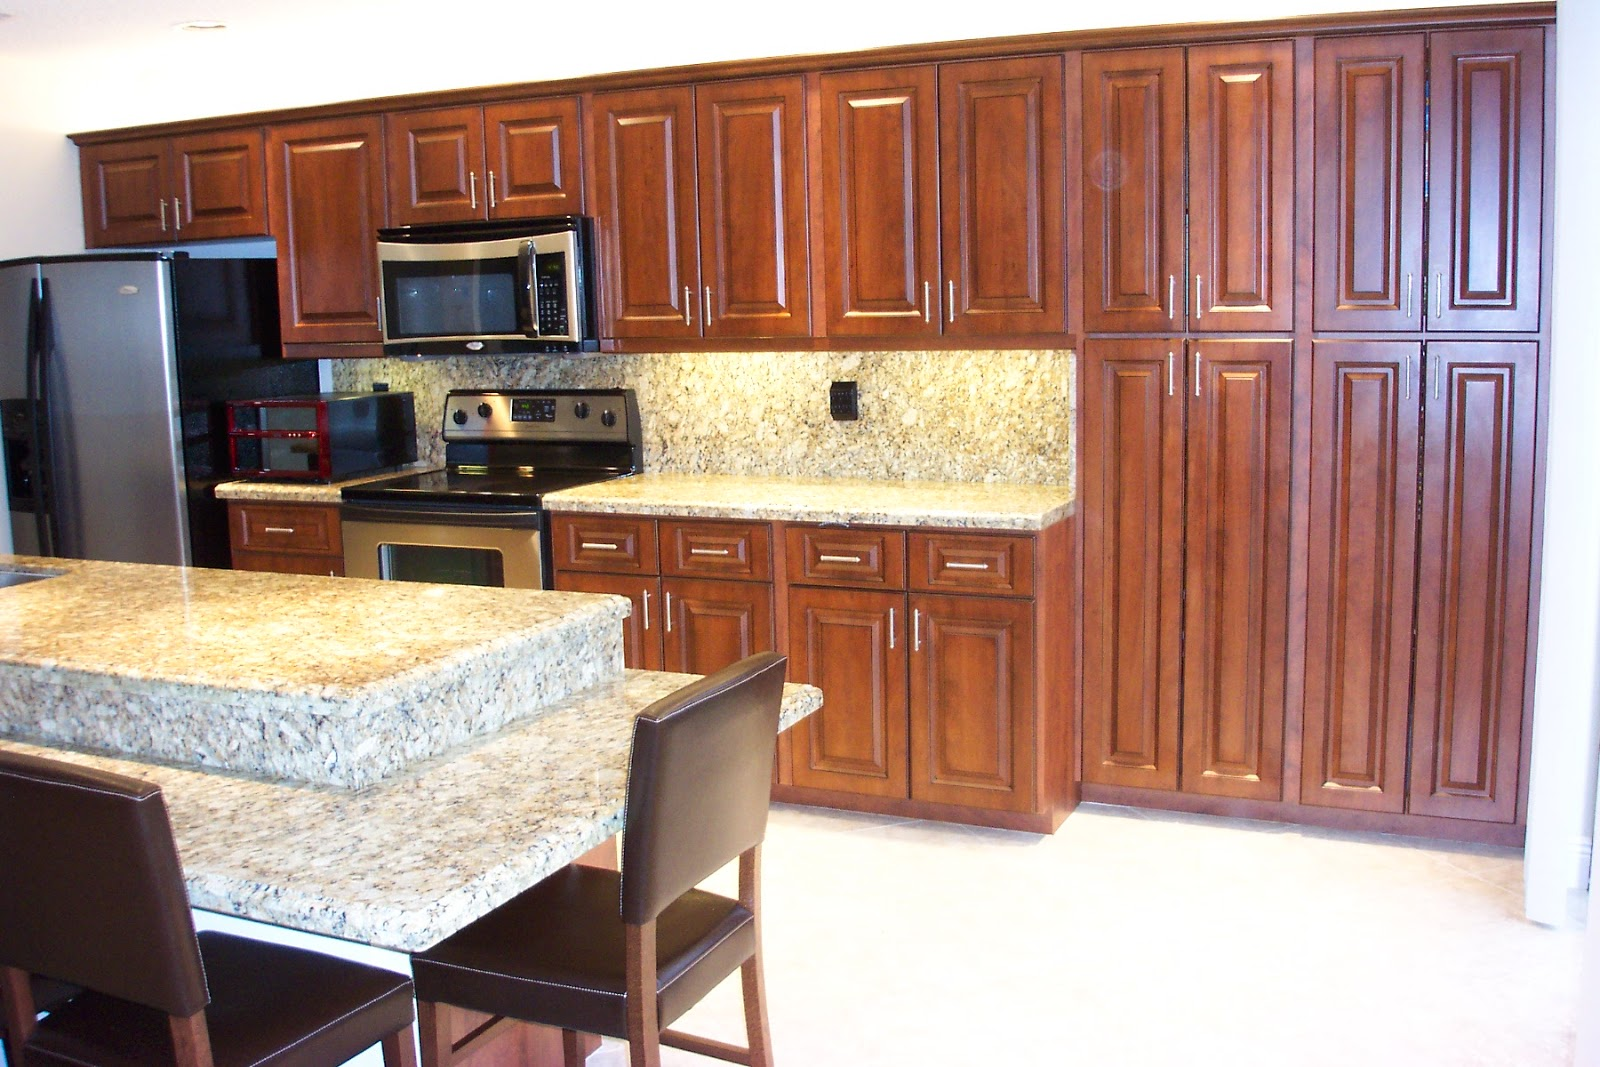 lowes kitchen cabinets in stock images lowes kitchen cabinets in resurface resurfacing reface refacing relaminate laminate kitchen remodeling remodel cabinet cabinets cabinetry charlotte nc